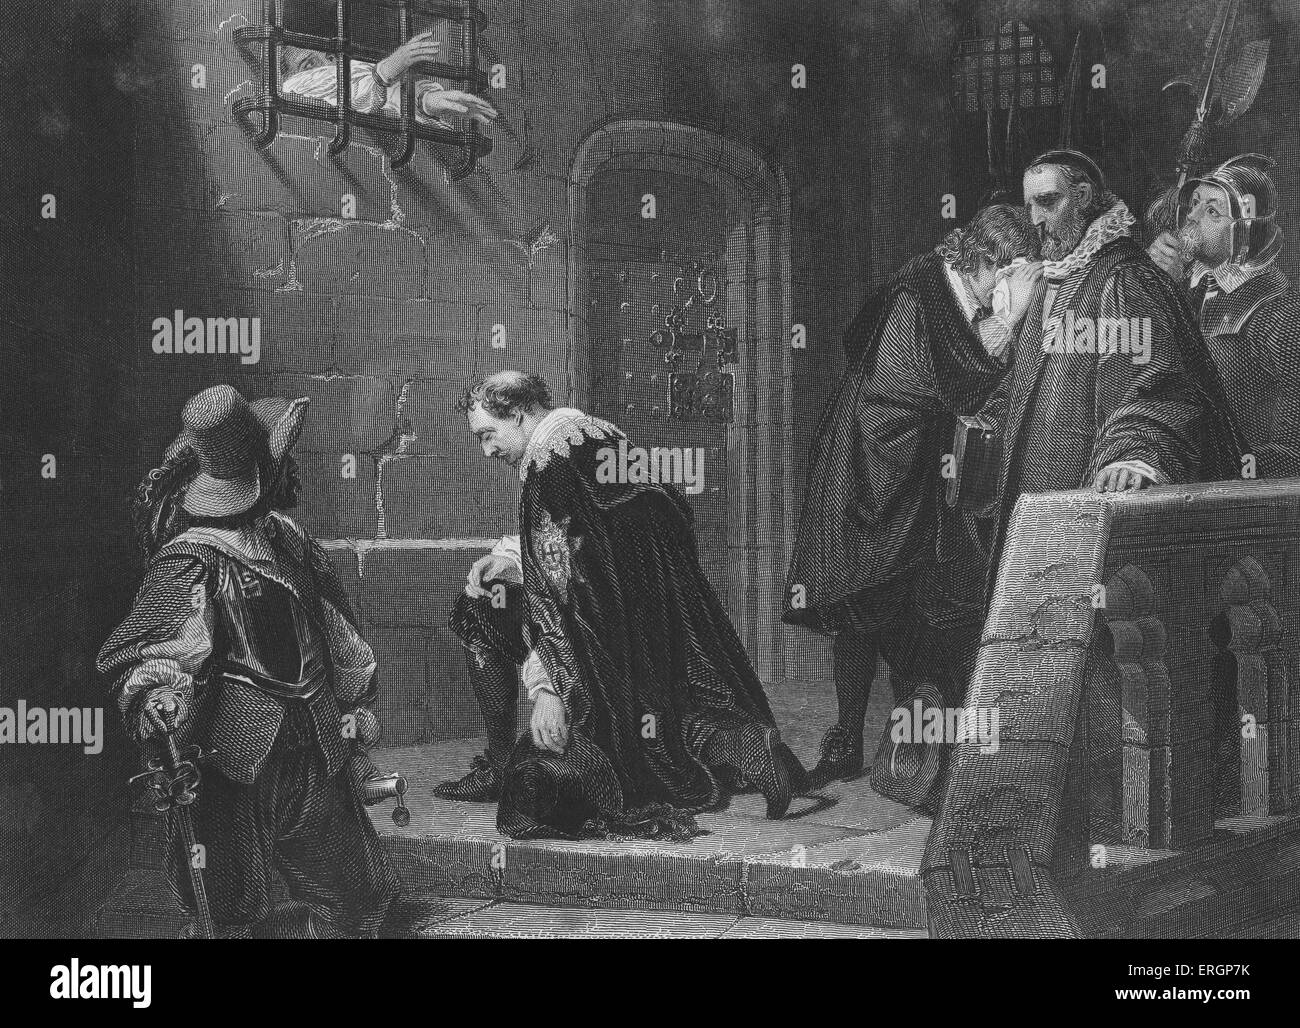 Archbishop Laud blesses Lord Strafford as he is led to execution.Thomas Wentworth, 1st Earl of Strafford, was executed - Stock Image